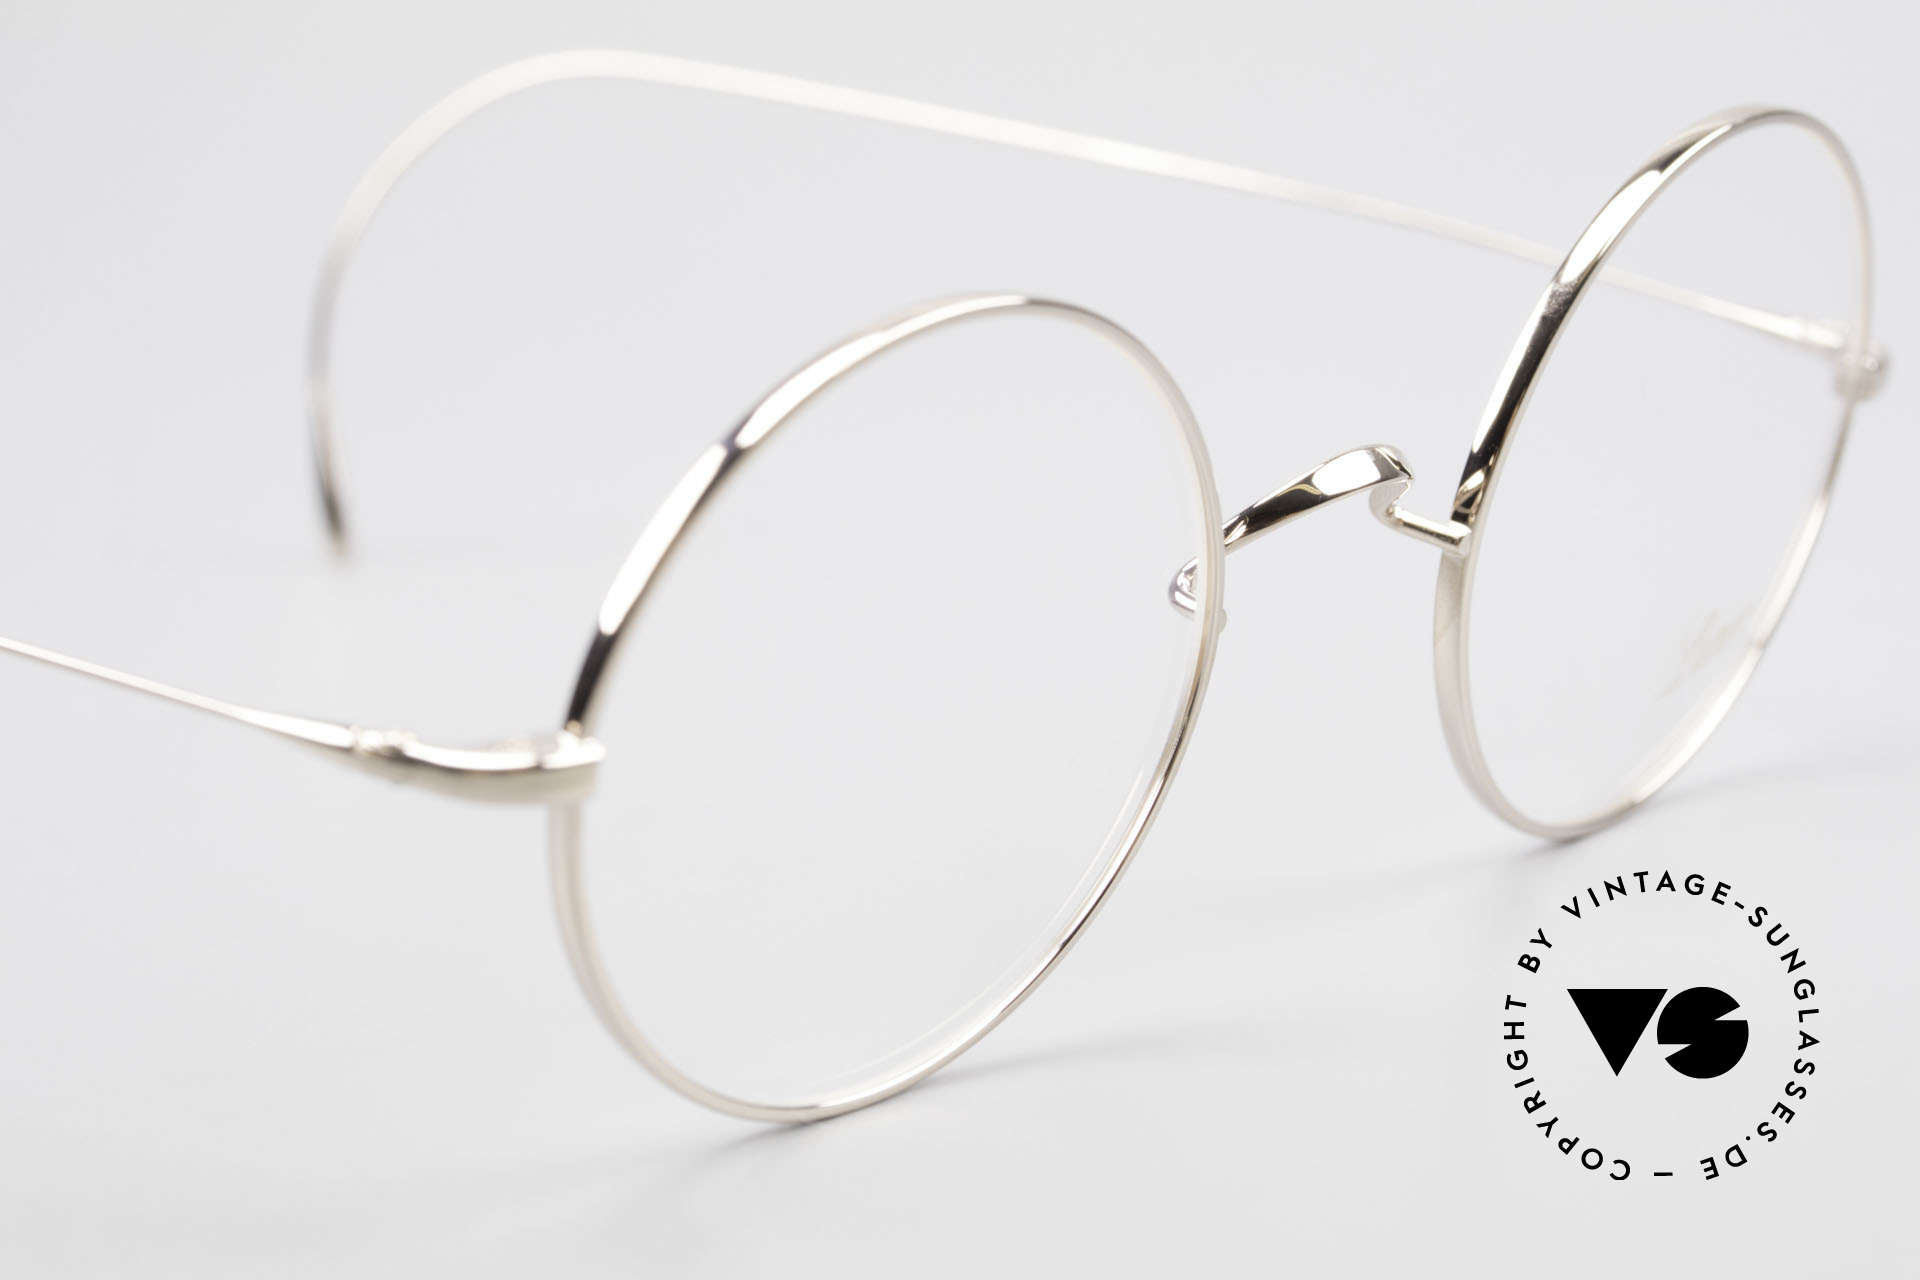 Lunor Advantage 420 GP Round Titan Frame Gold Plated, from the latest collection, but in a well-known quality, Made for Men and Women